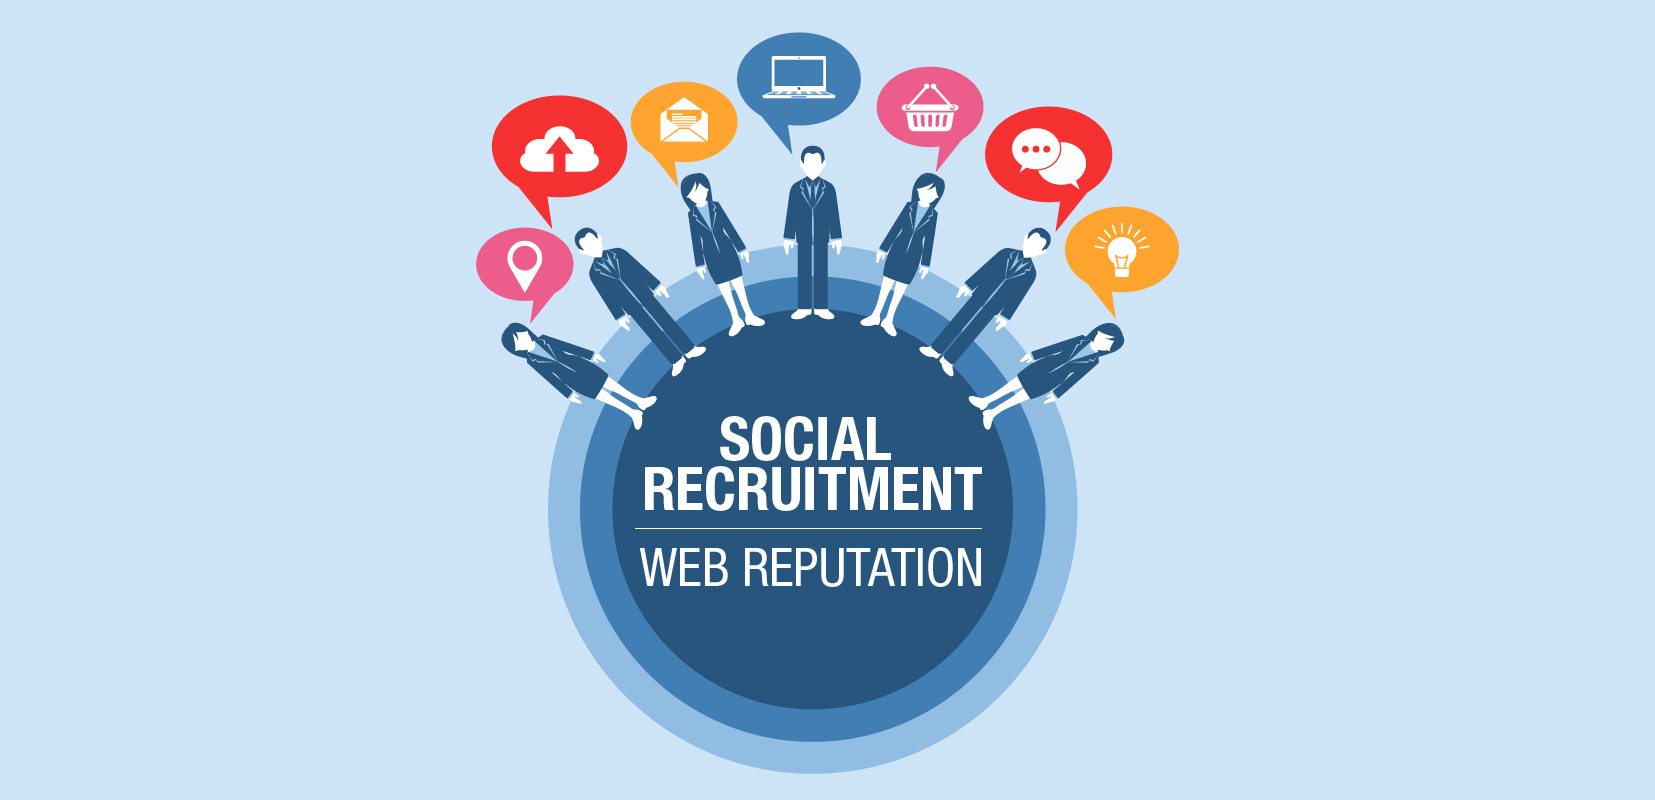 Web reputation e social recruiting: i social network diventano il nuovo CV